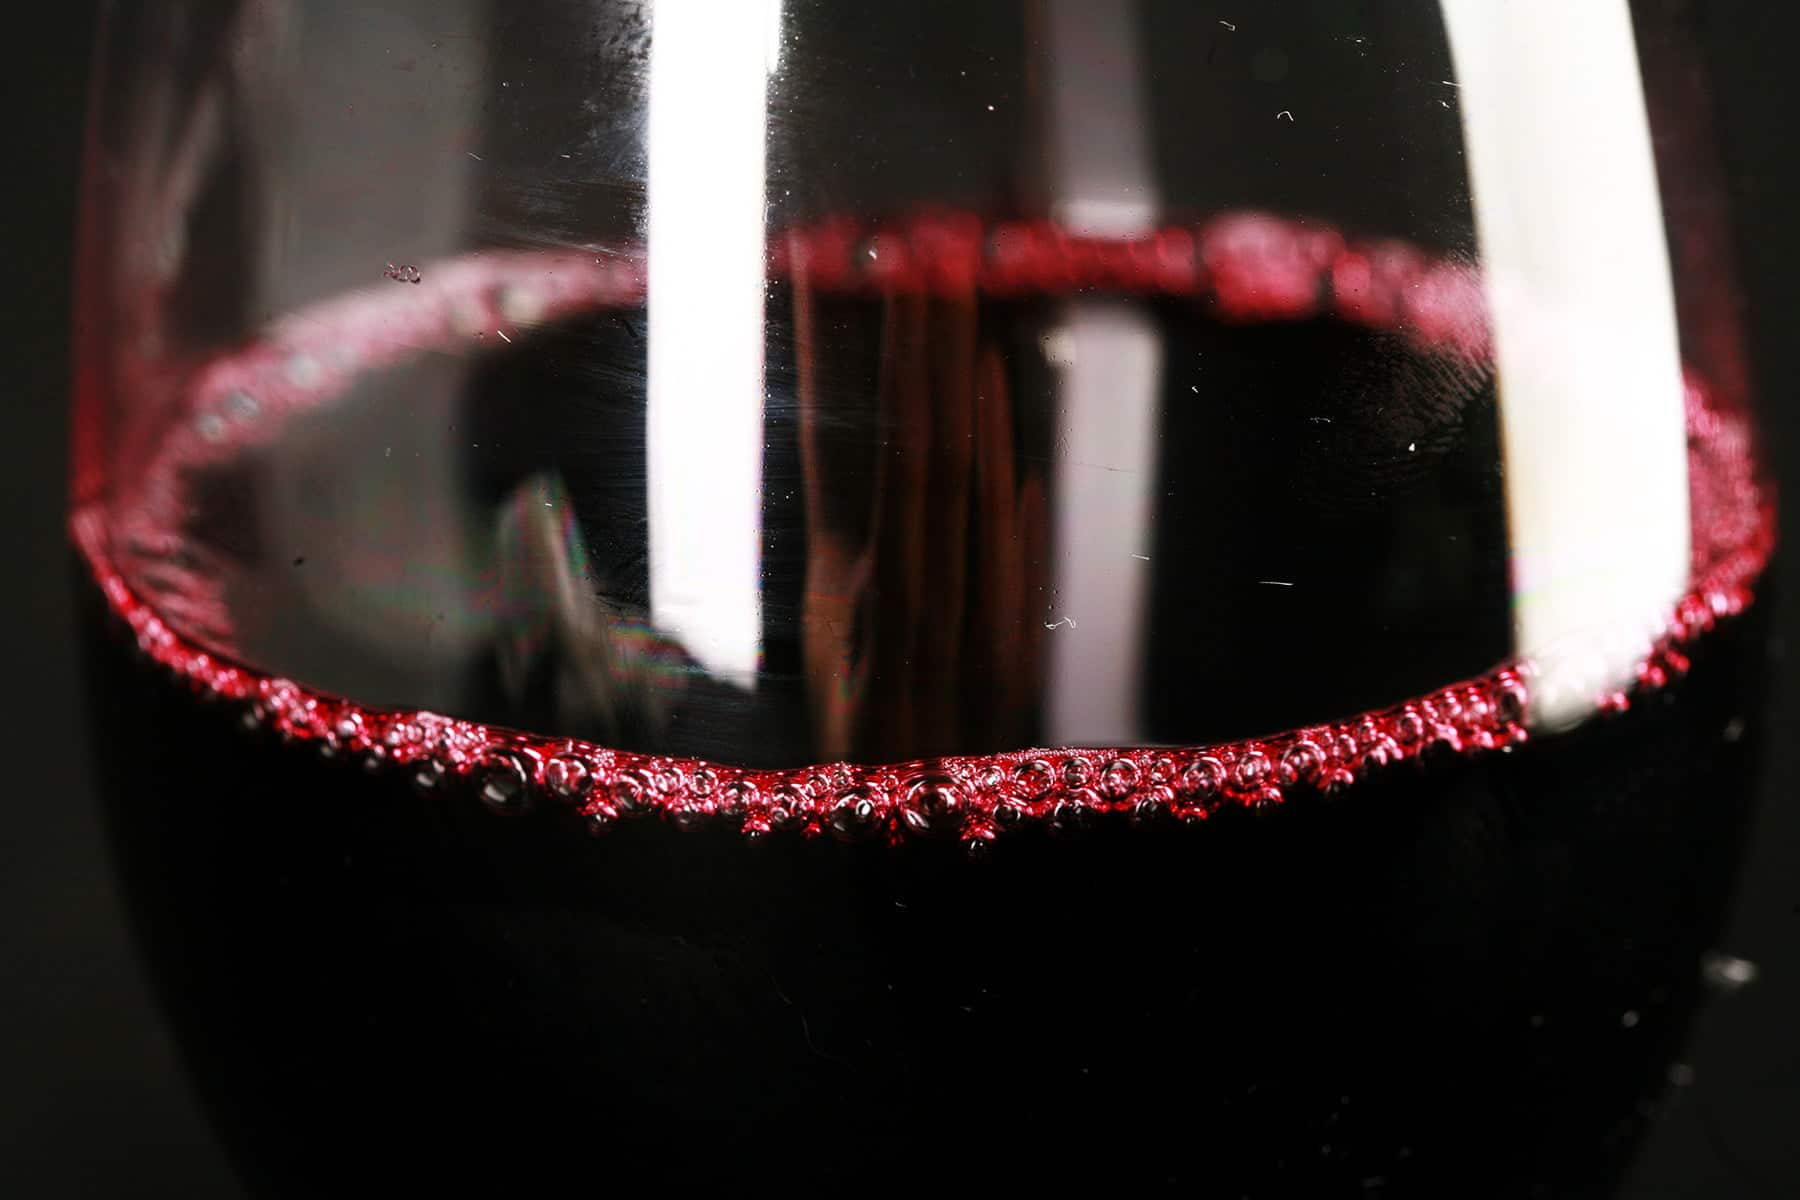 An extreme close up photo of a glass of blueberry wine.